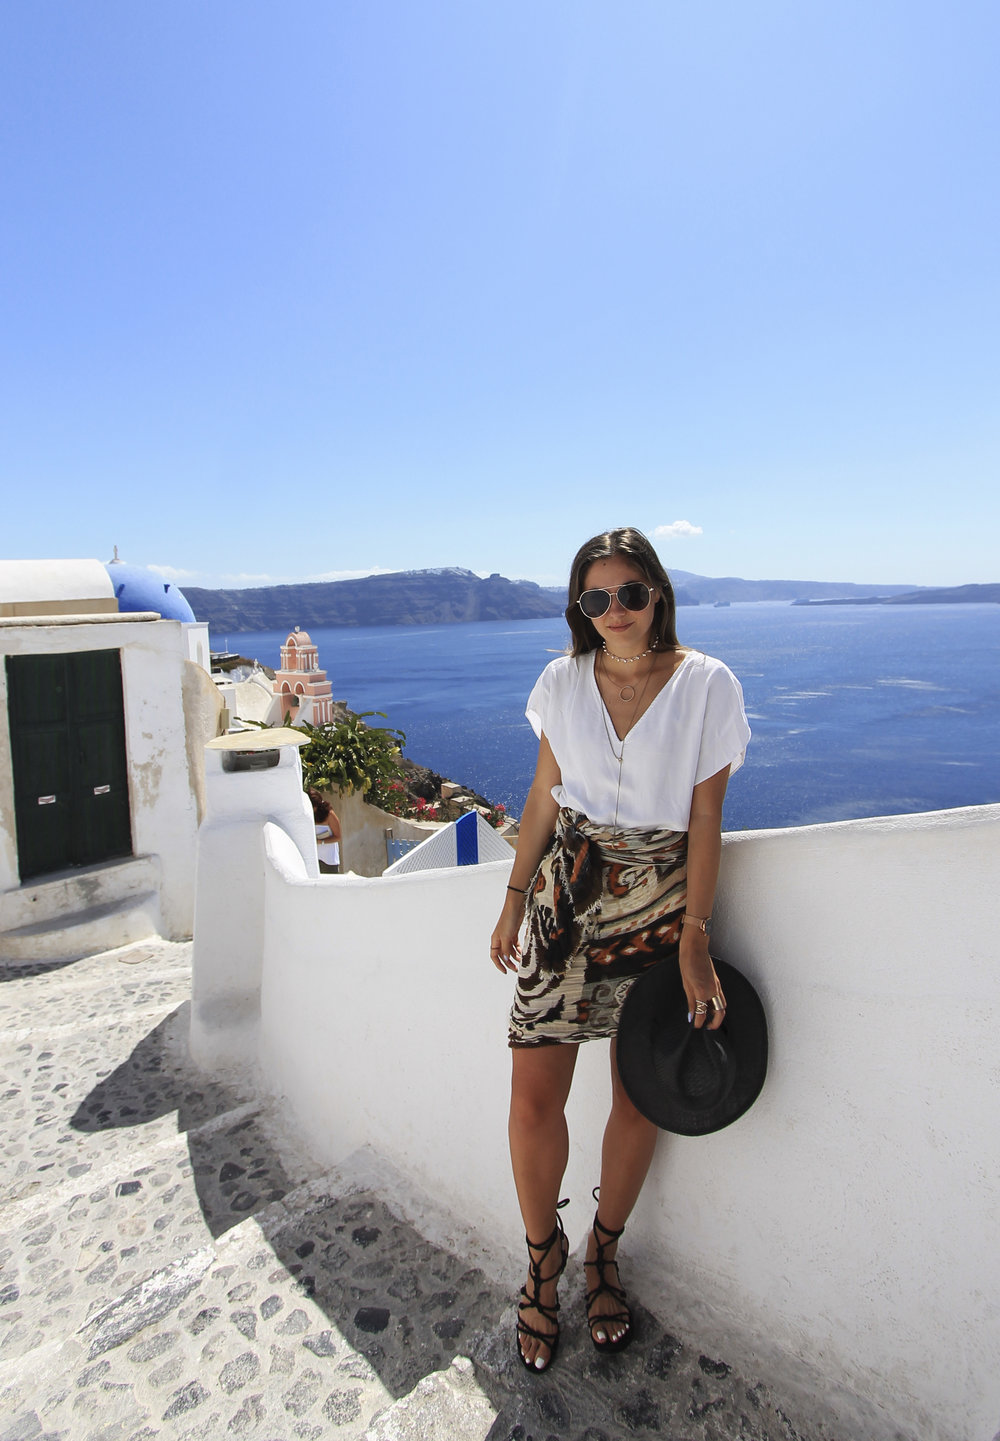 oia santorini style outfit skirt h&m hat rebecca minkoff black lace up sandals.jpg